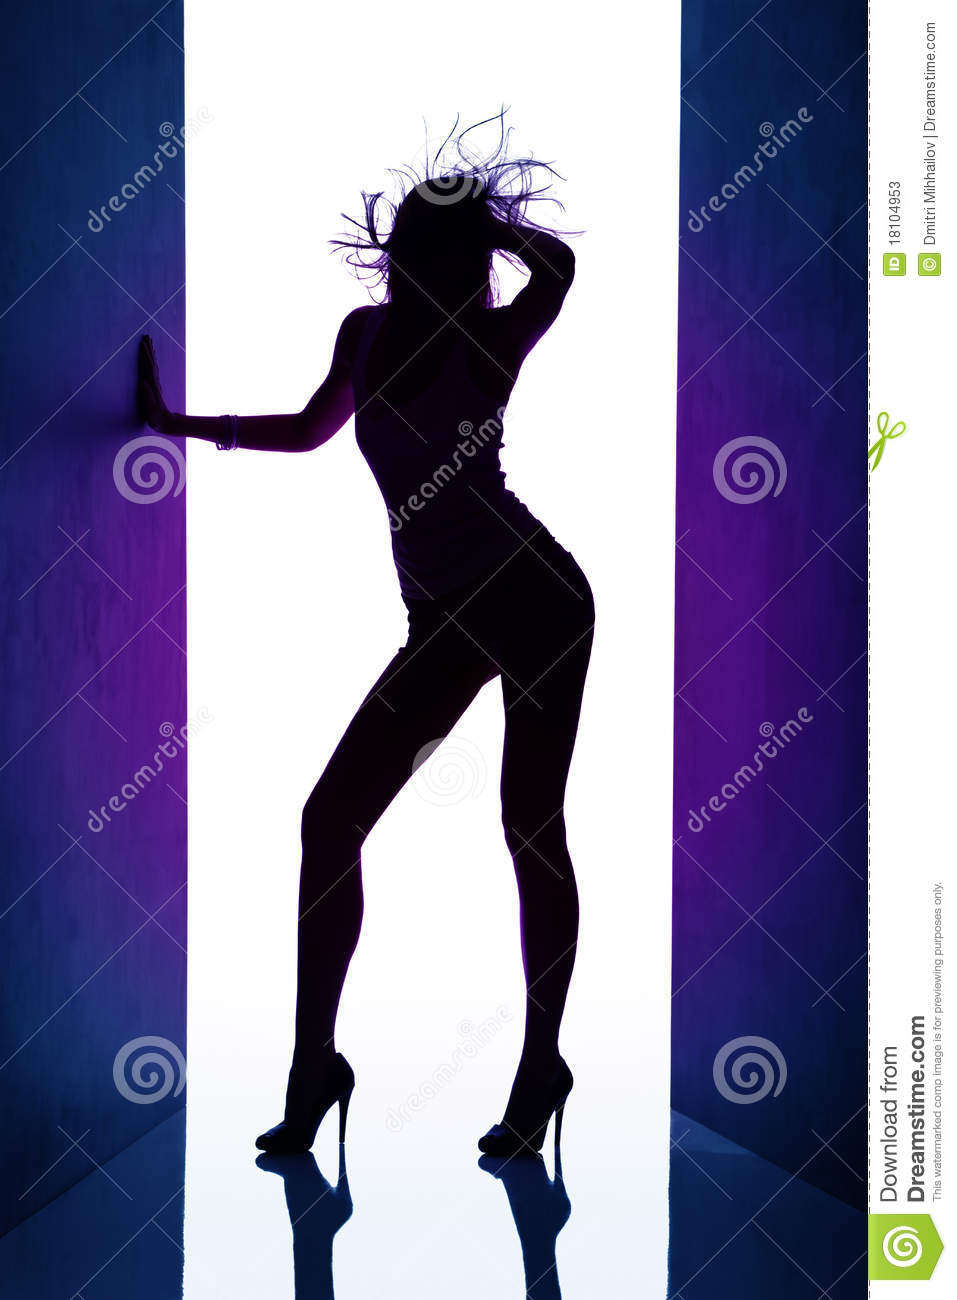 dancing girl silhouette - photo #46